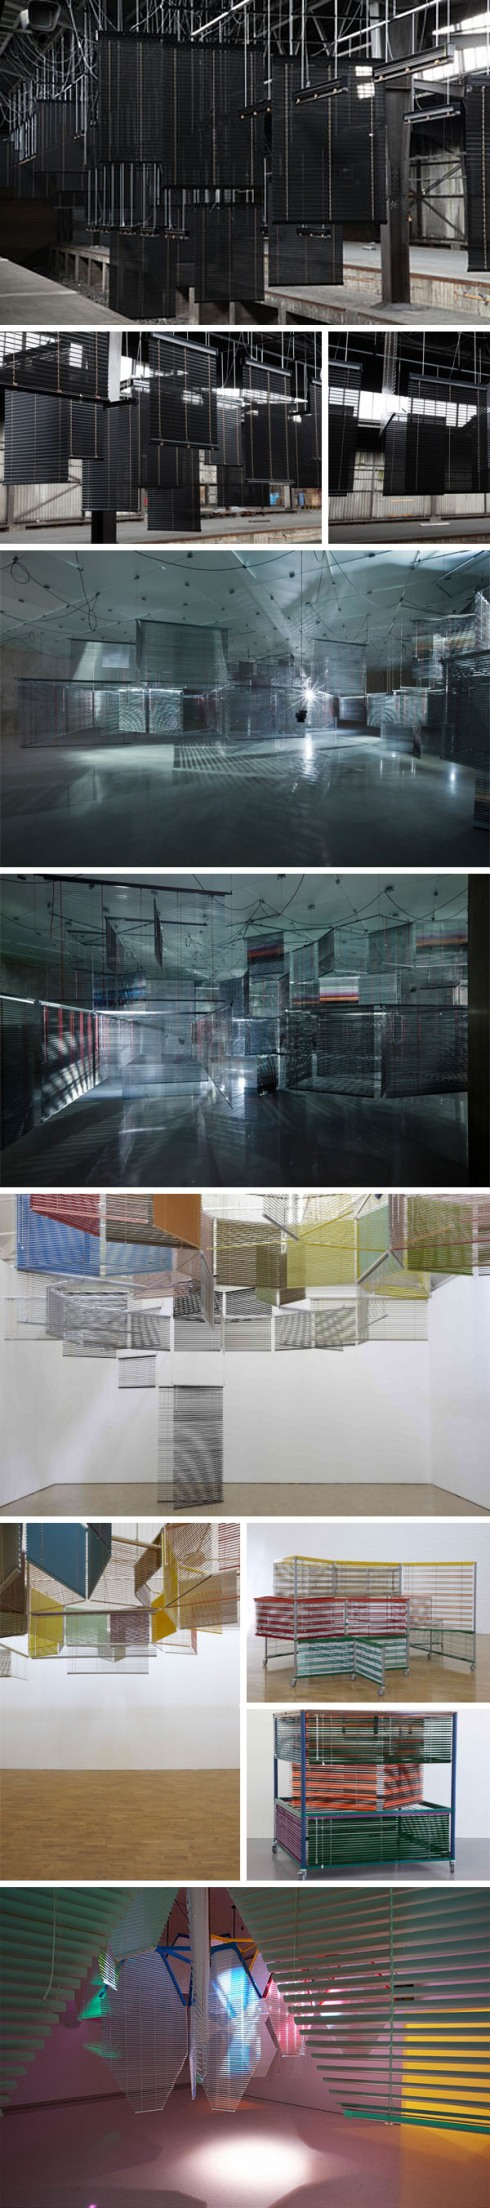 Korean Contemporary art, Venetian Blind art installations, Haegue Yang, Heike Jung, Documenta13